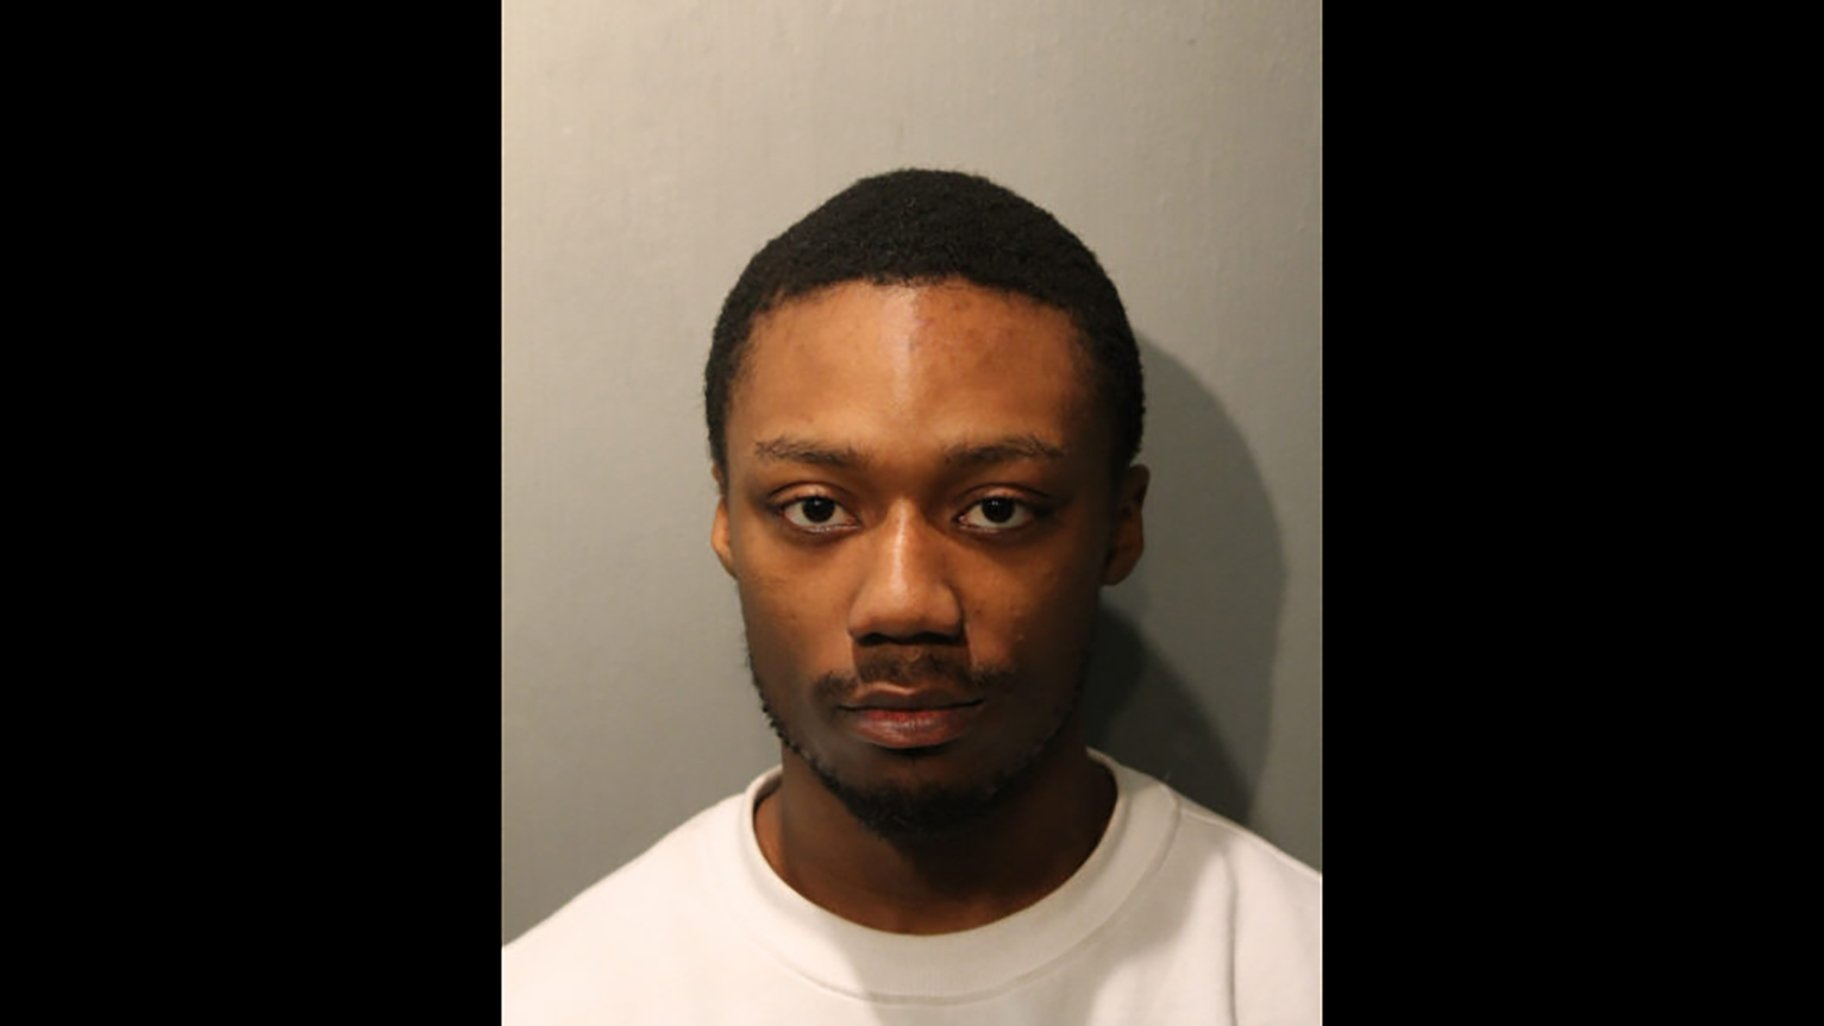 Jaquan Washington (Chicago Police Department)